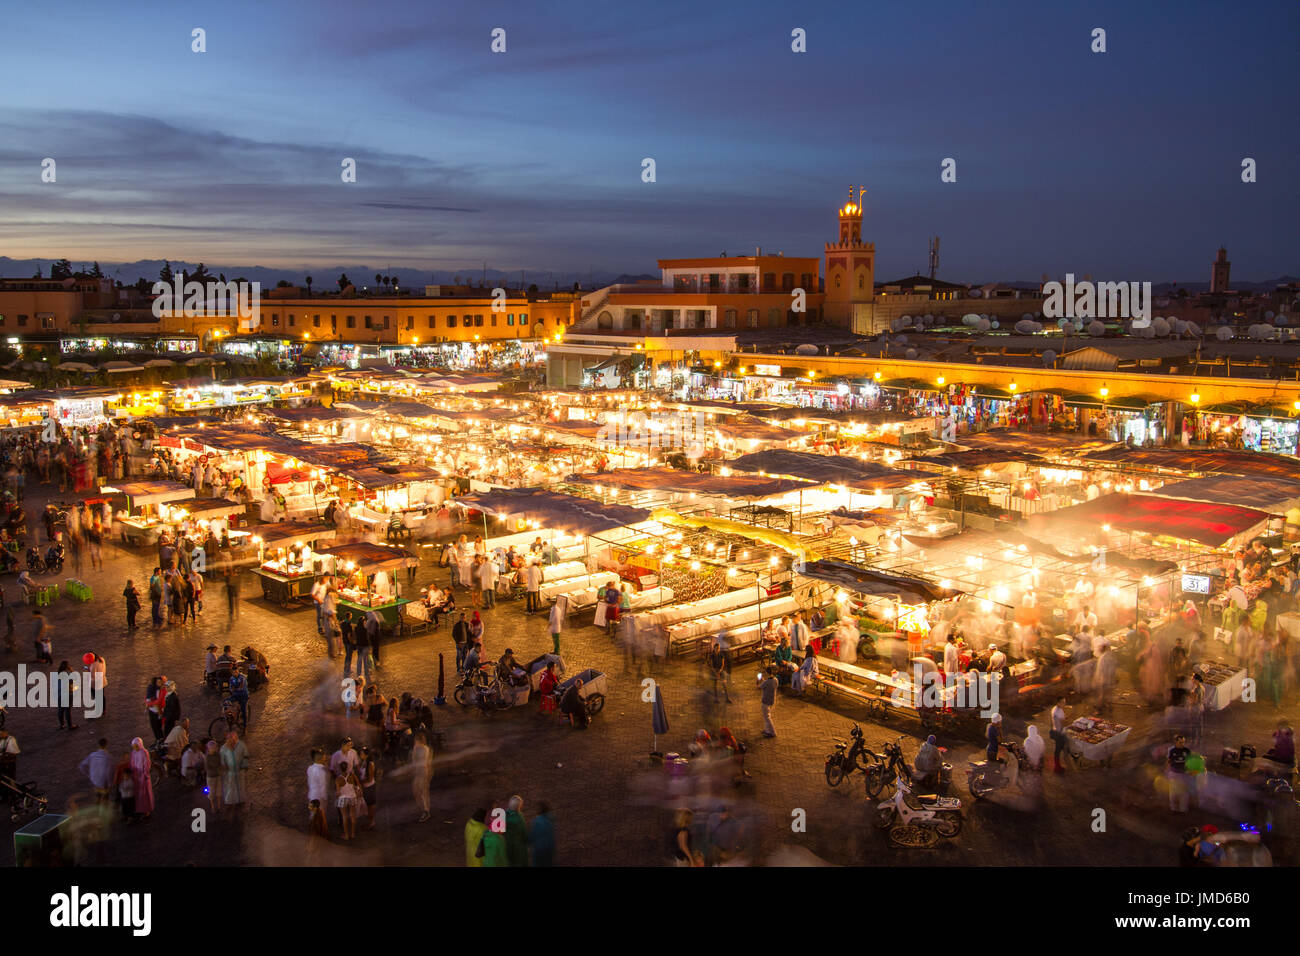 Jamaa el Fna market square at dusk, Marrakesh, Morocco, north Africa. - Stock Image